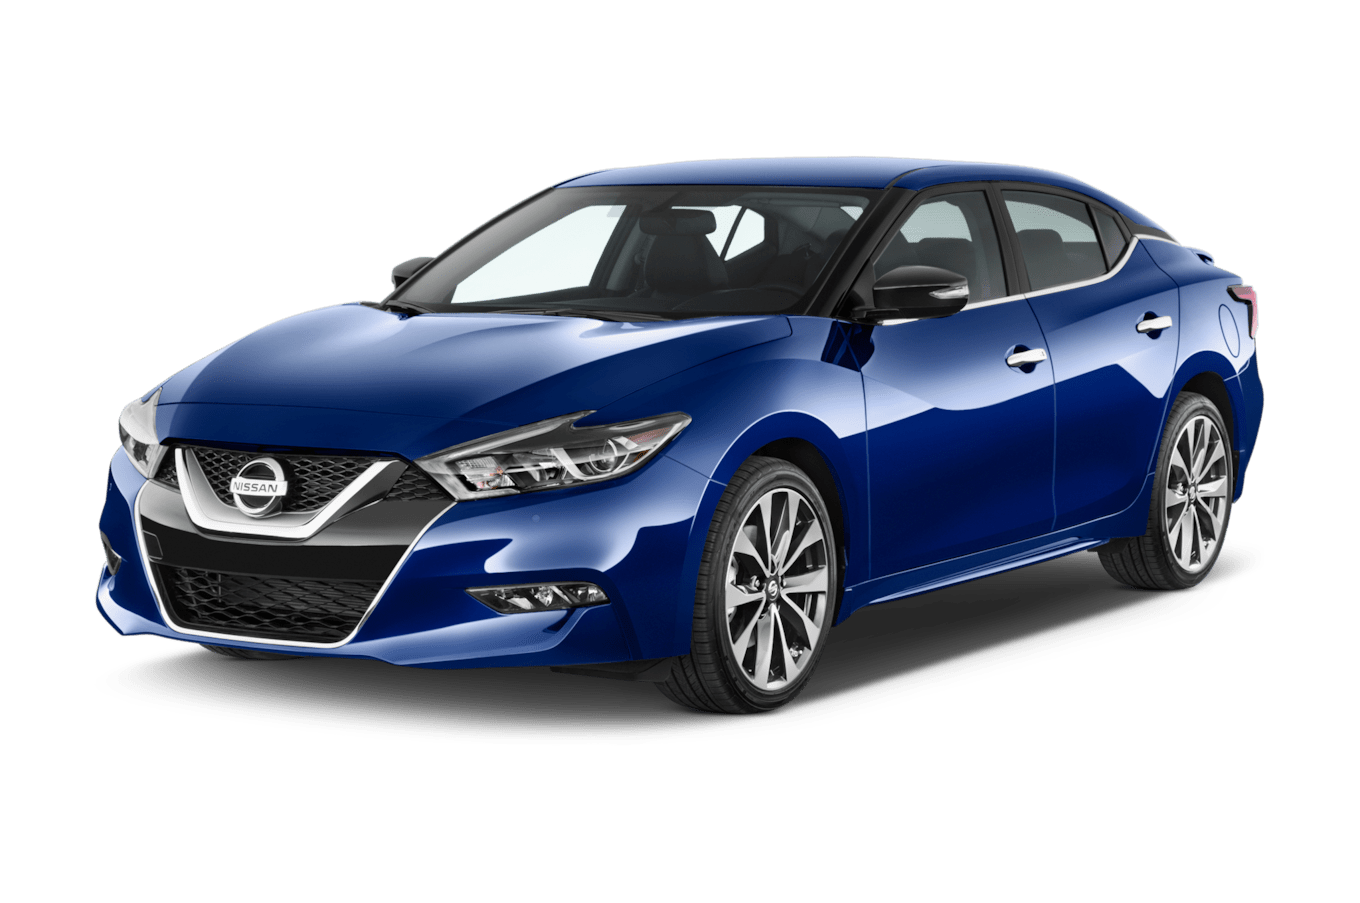 medium resolution of 2016 nissan maxima reviews research maxima prices specs 2001 bmw z3 blue as well 2001 nissan altima engine diagram further